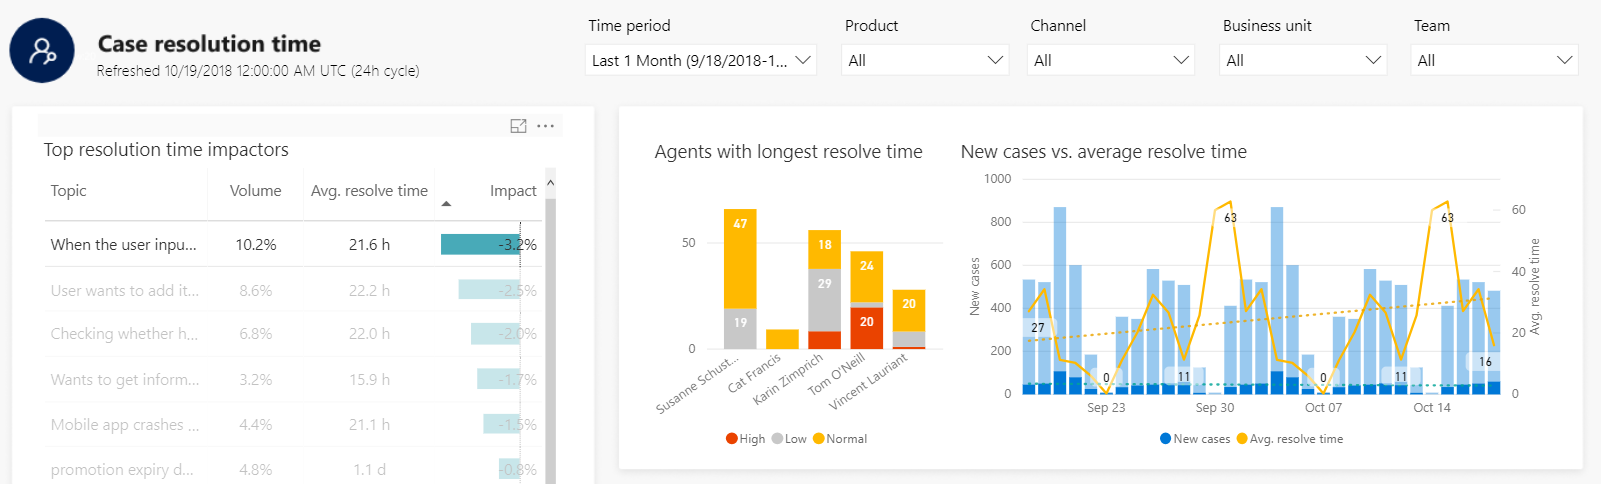 Monitoring Case Resolution in Customer Service Insights